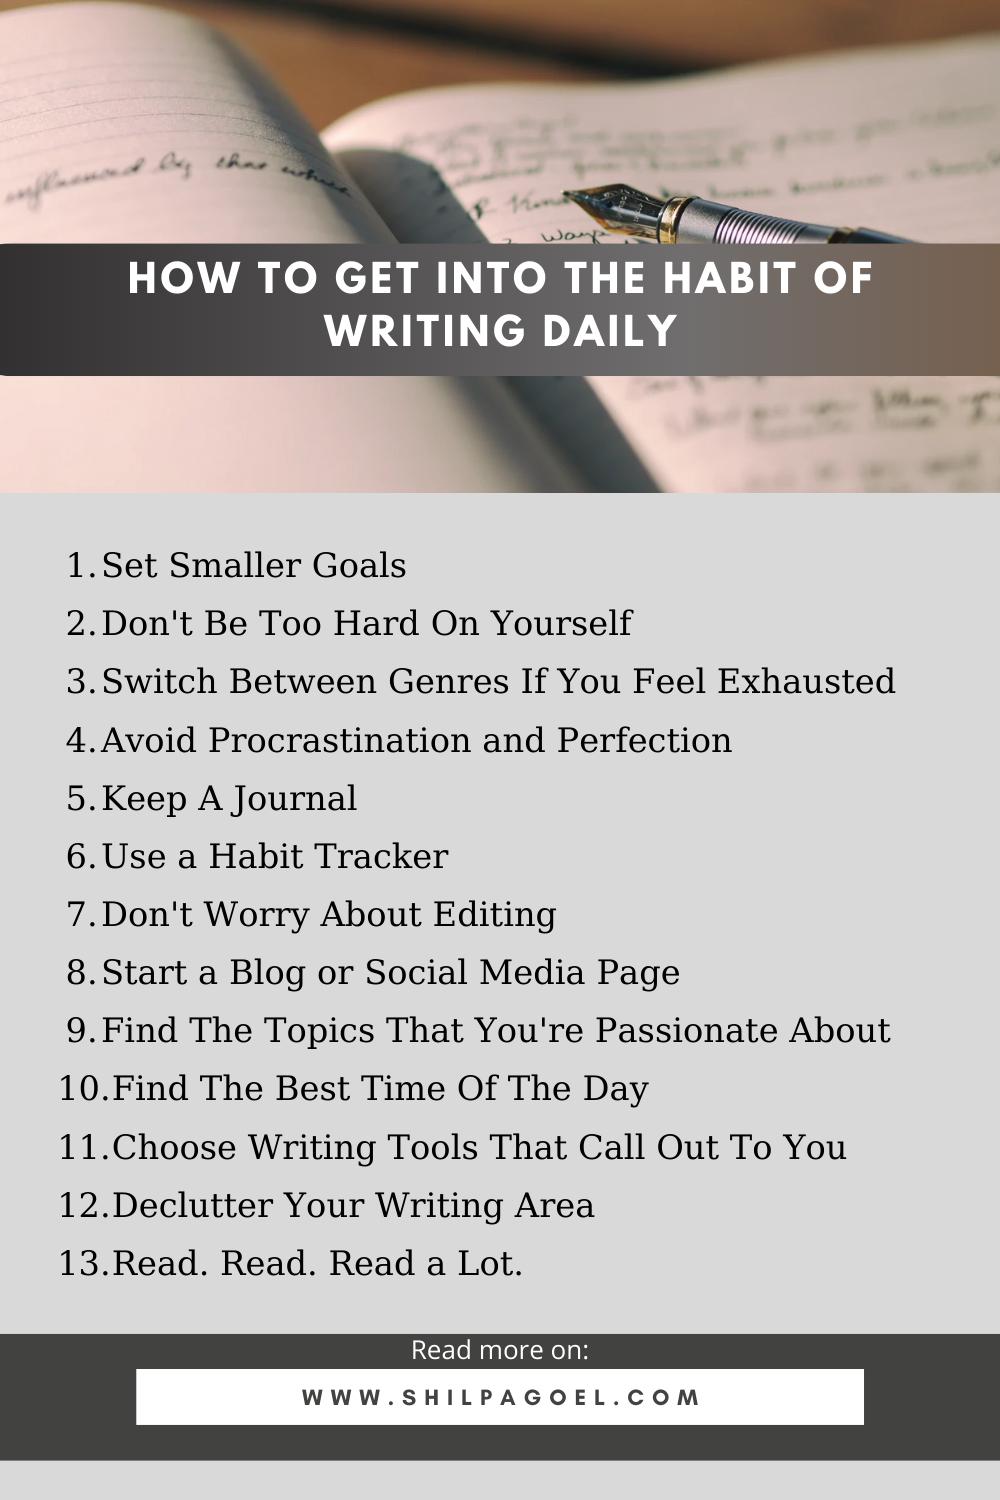 How To Get Into The Habit Of Writing Daily